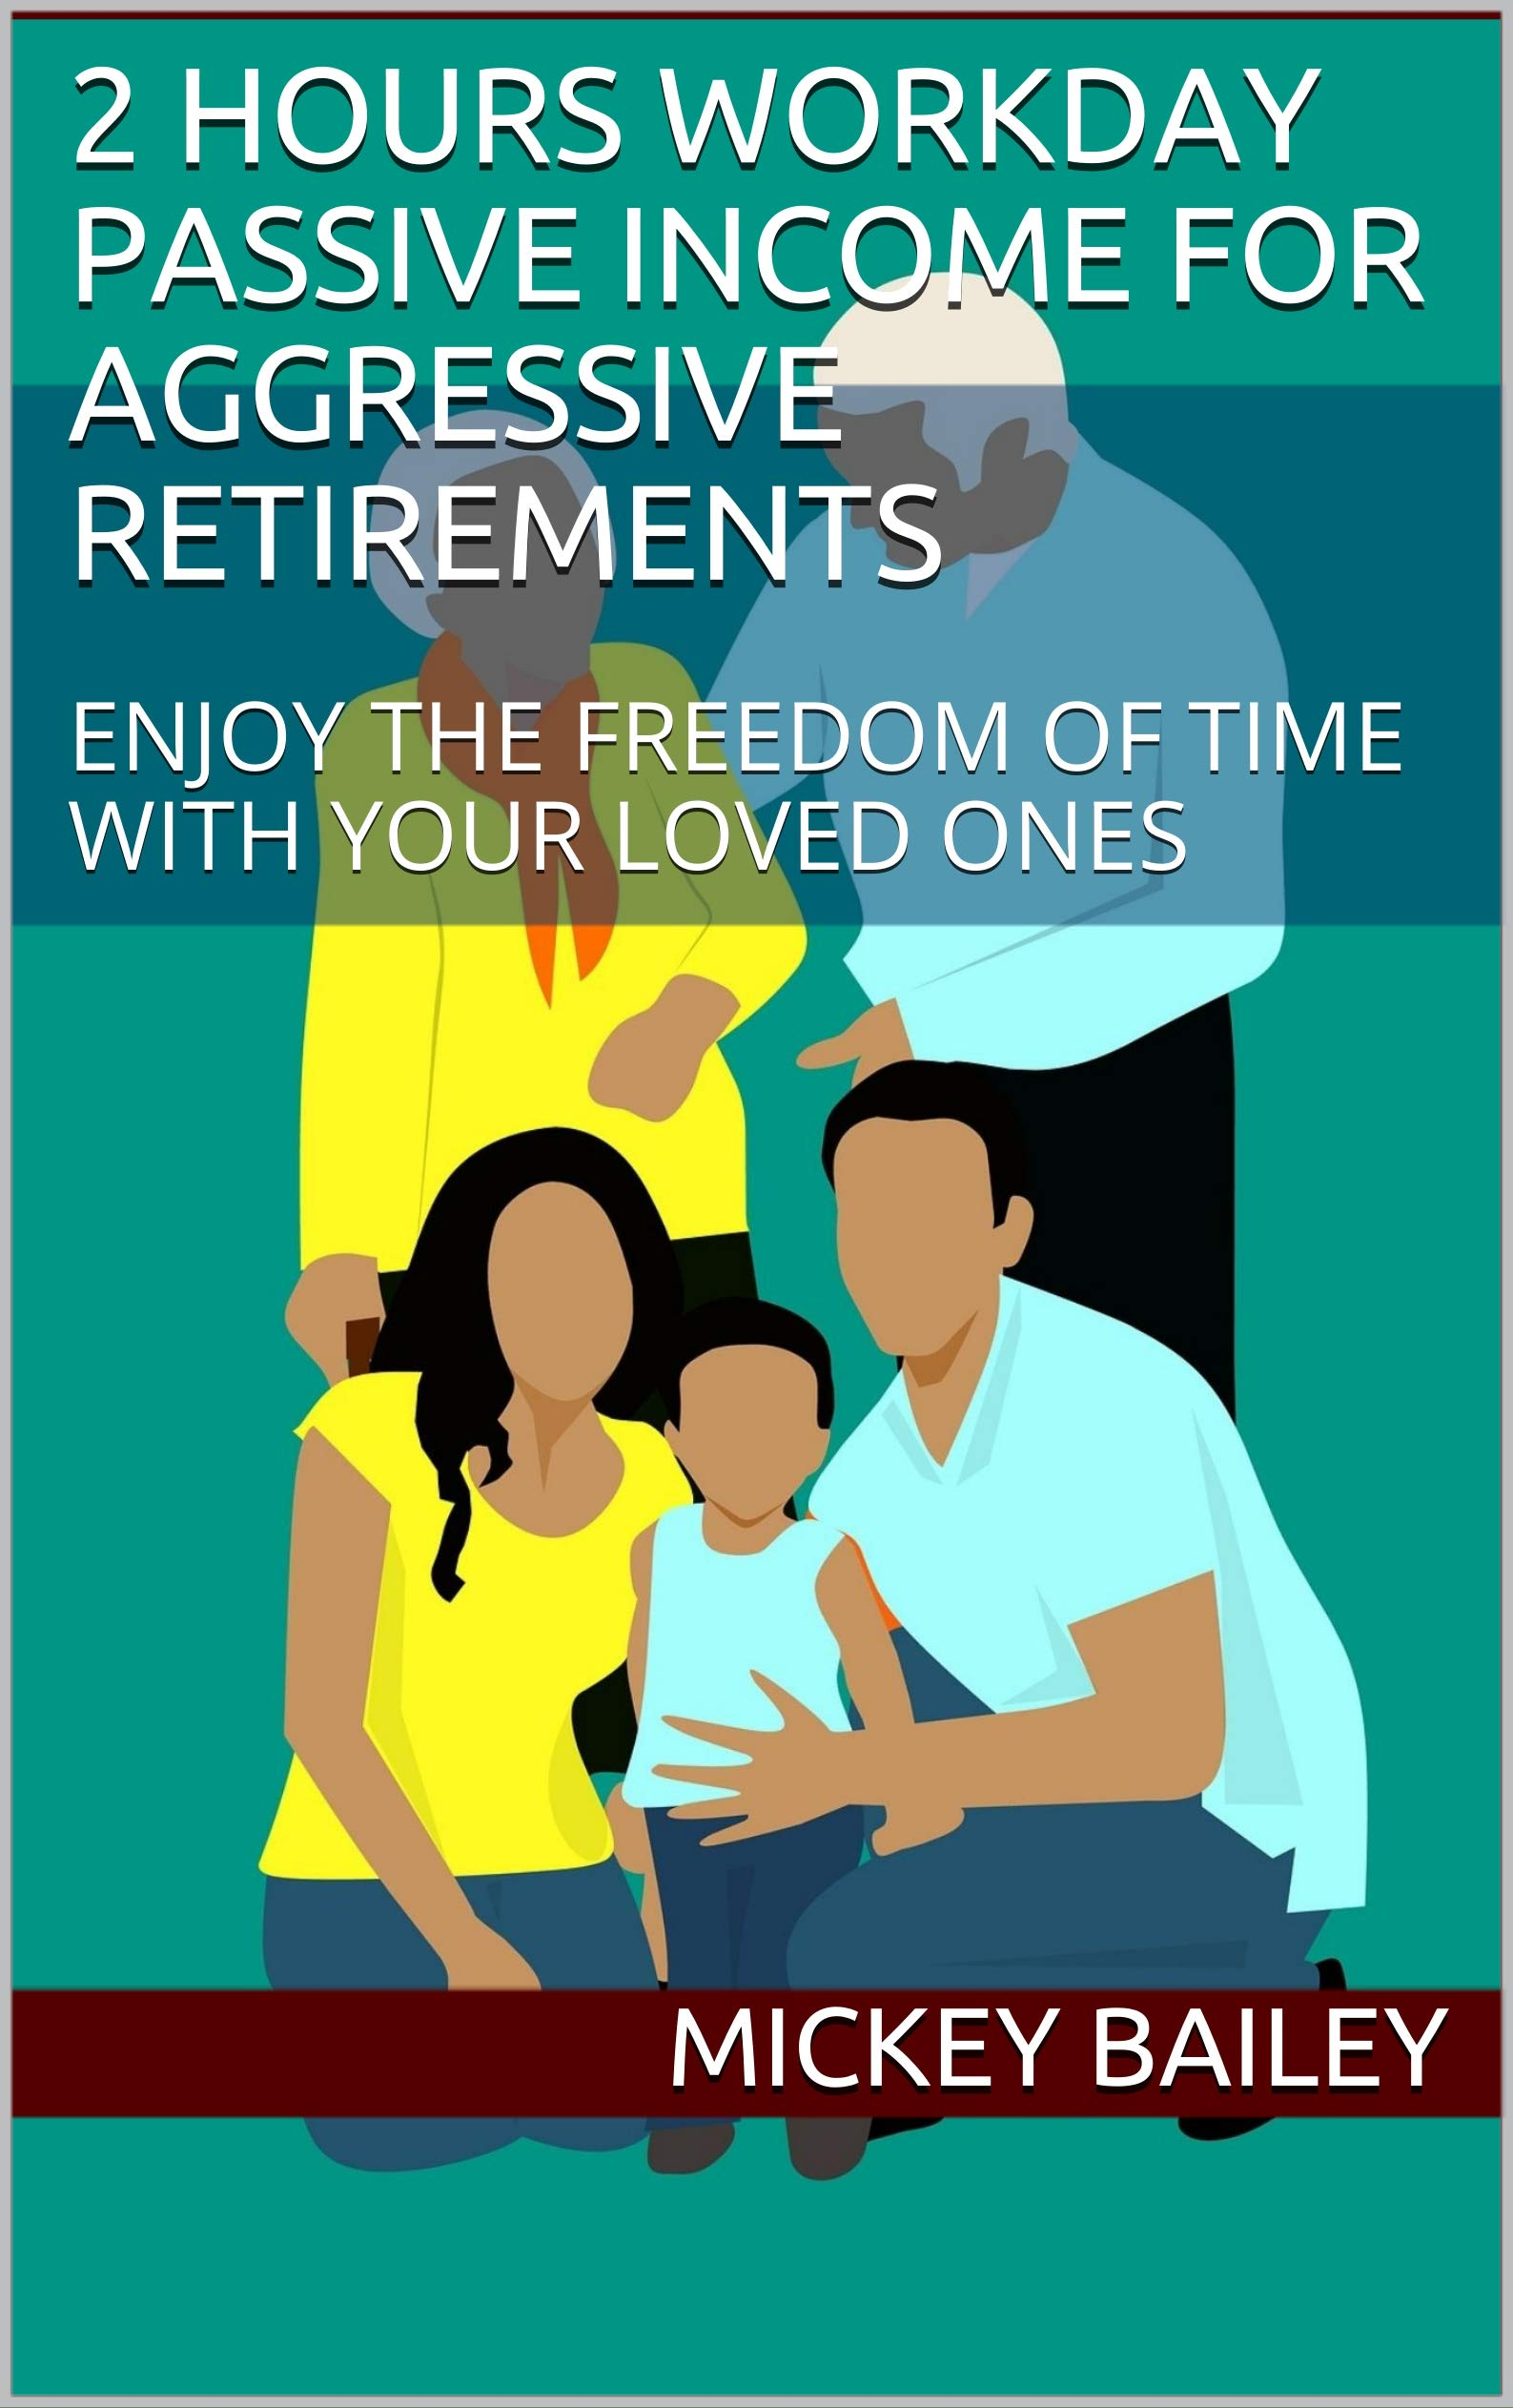 2 HOURS WORKDAY PASSIVE INCOME FOR AGGRESSIVE RETIREMENTS: ENJOY THE FREEDOM OF TIME WITH YOUR LOVED ONES